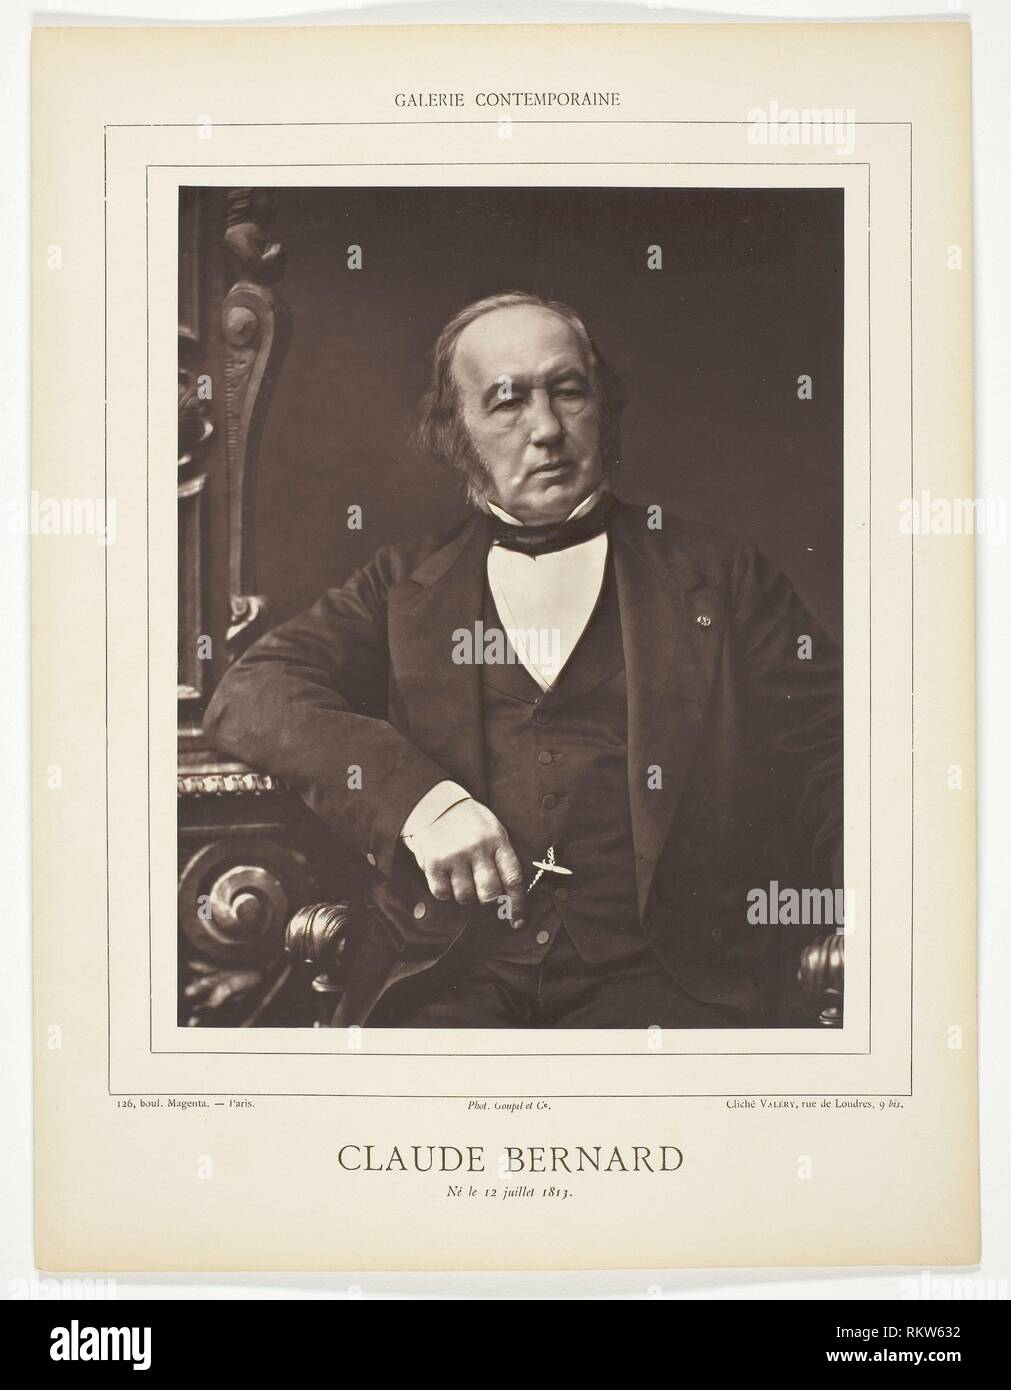 Claude Bernard - c. 1876 - Valery French, 19th century - Artist: Valery, Origin: France, Date: 1871–1877, Medium: Woodburytype, from the periodical - Stock Image